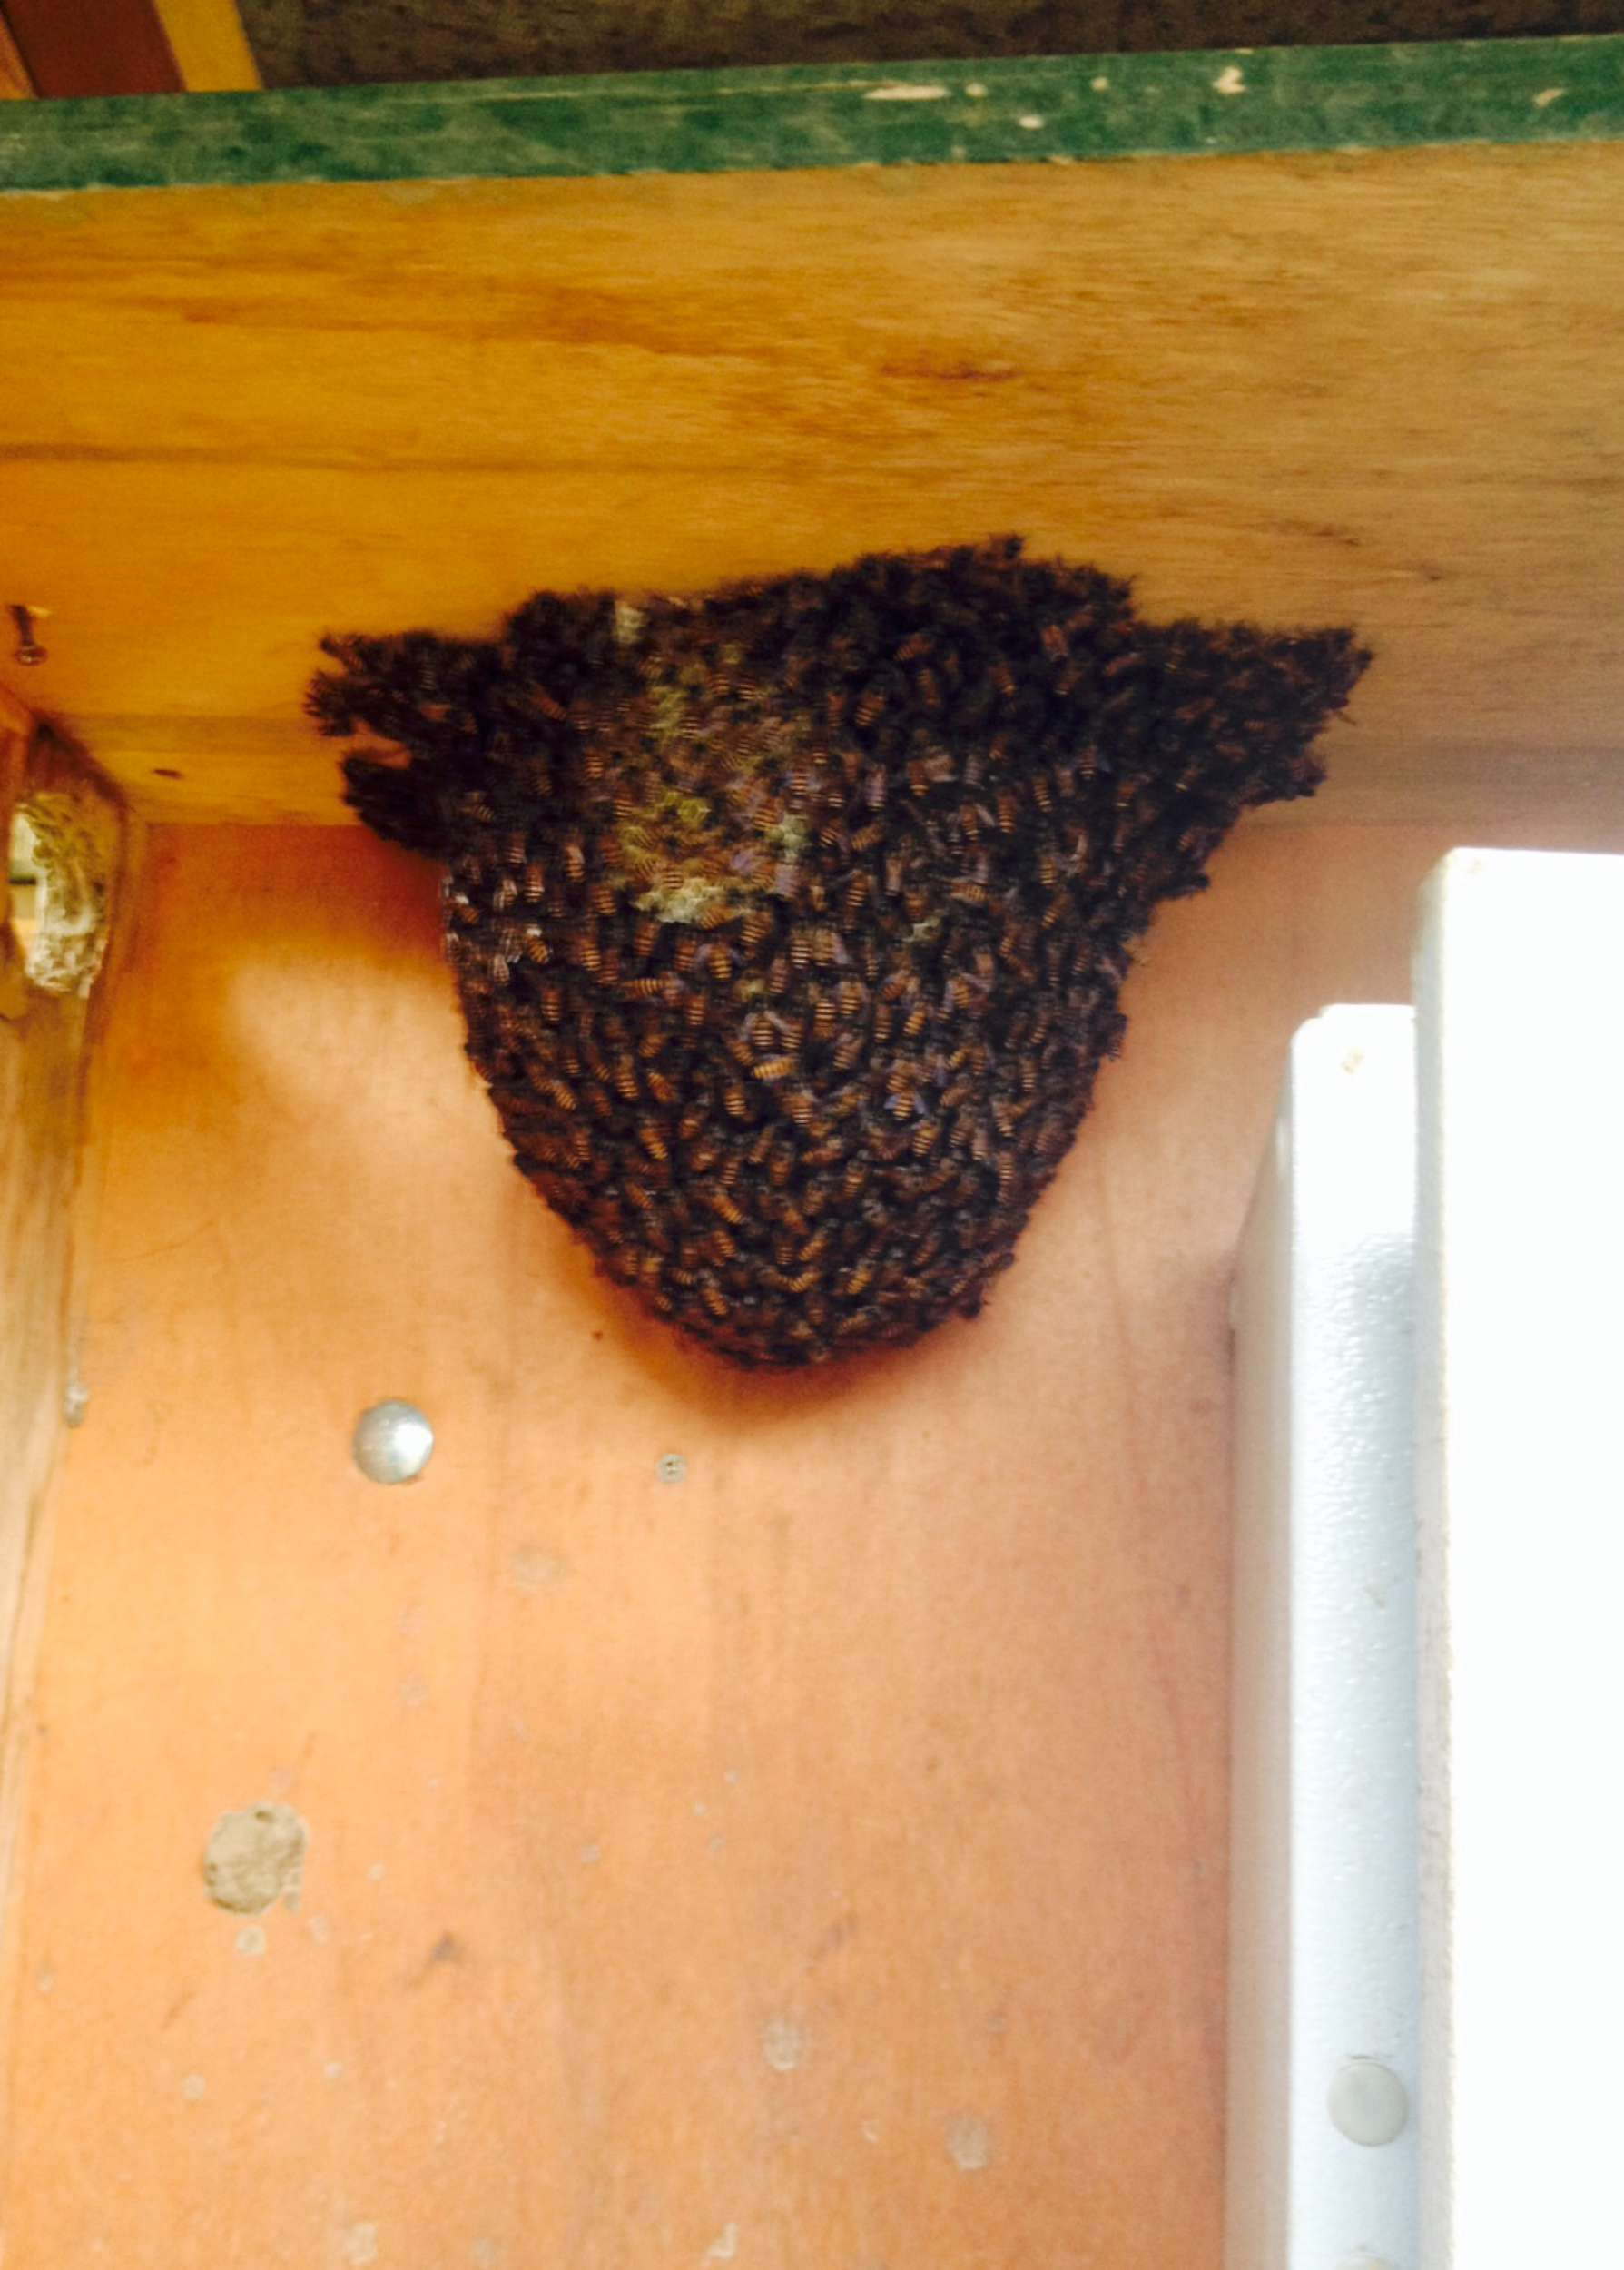 Bees!!!!!!!!!!!